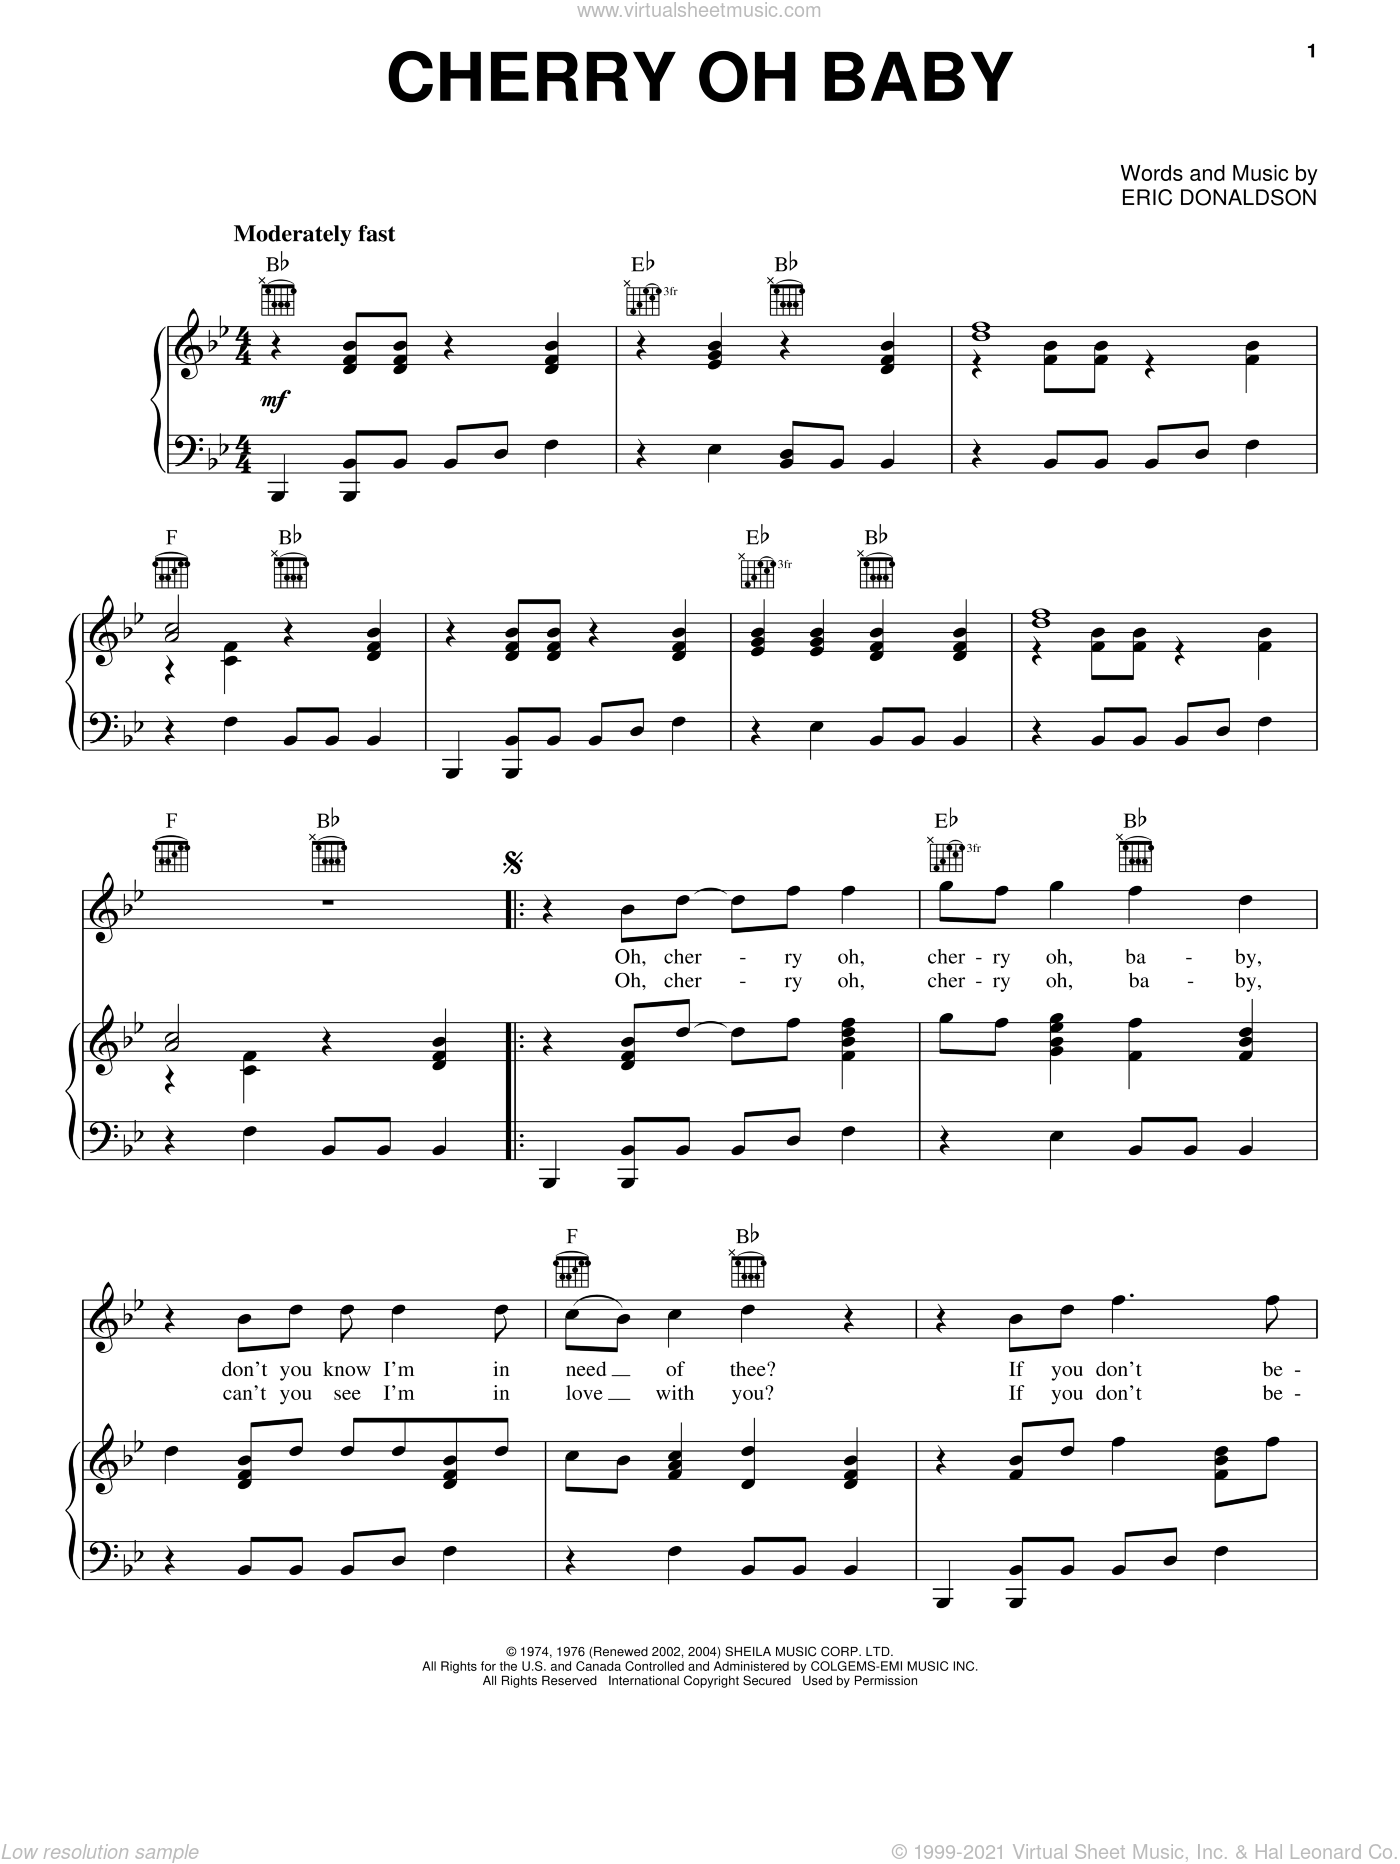 Cherry Oh Baby sheet music for voice, piano or guitar by The Rolling Stones and Eric Donaldson, intermediate skill level